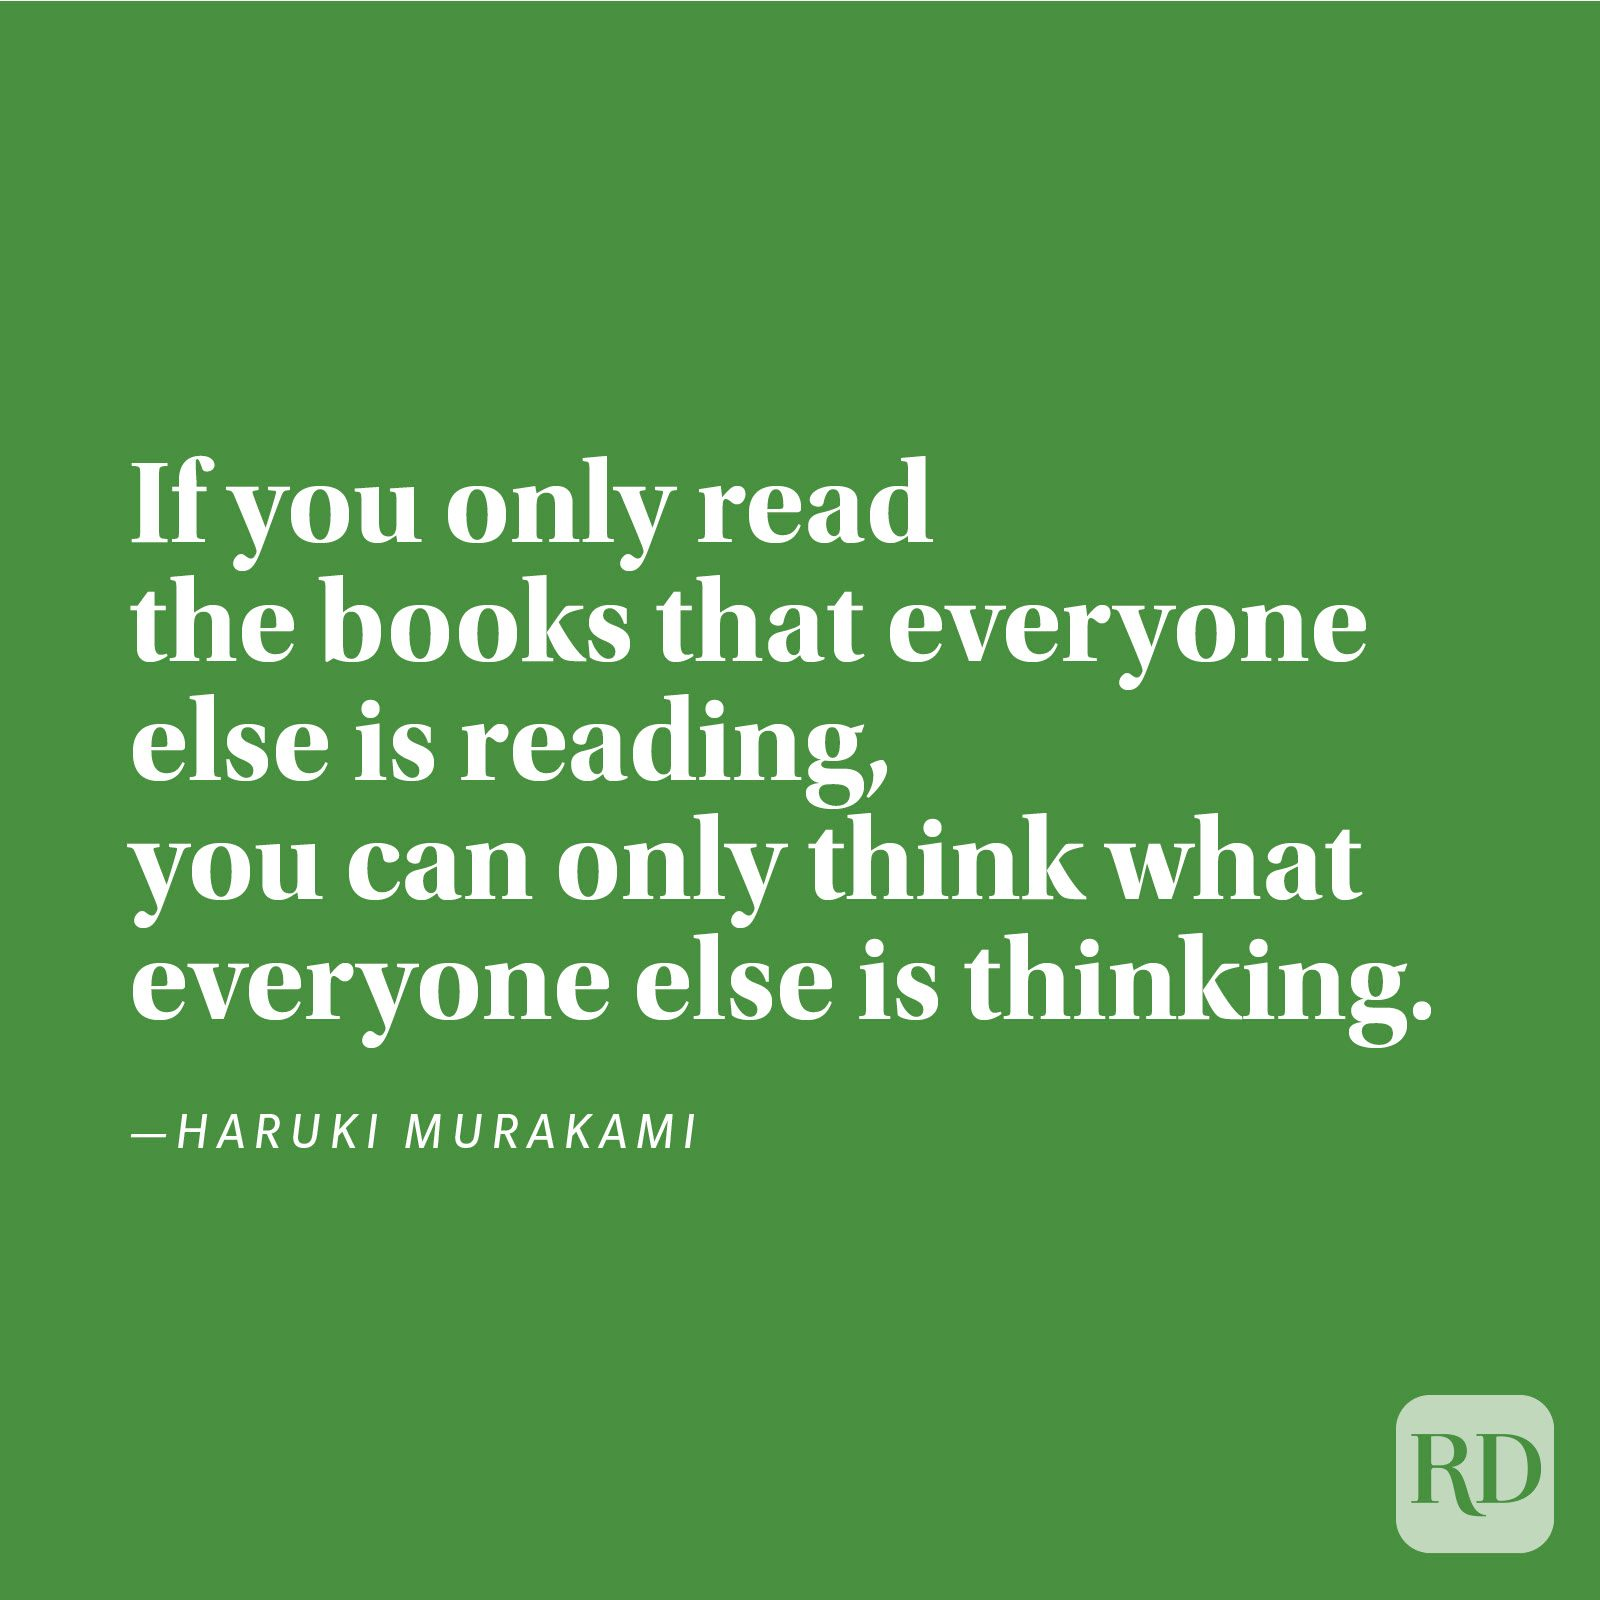 """If you only read the books that everyone else is reading, you can only think what everyone else is thinking."" —Haruki Murakami."